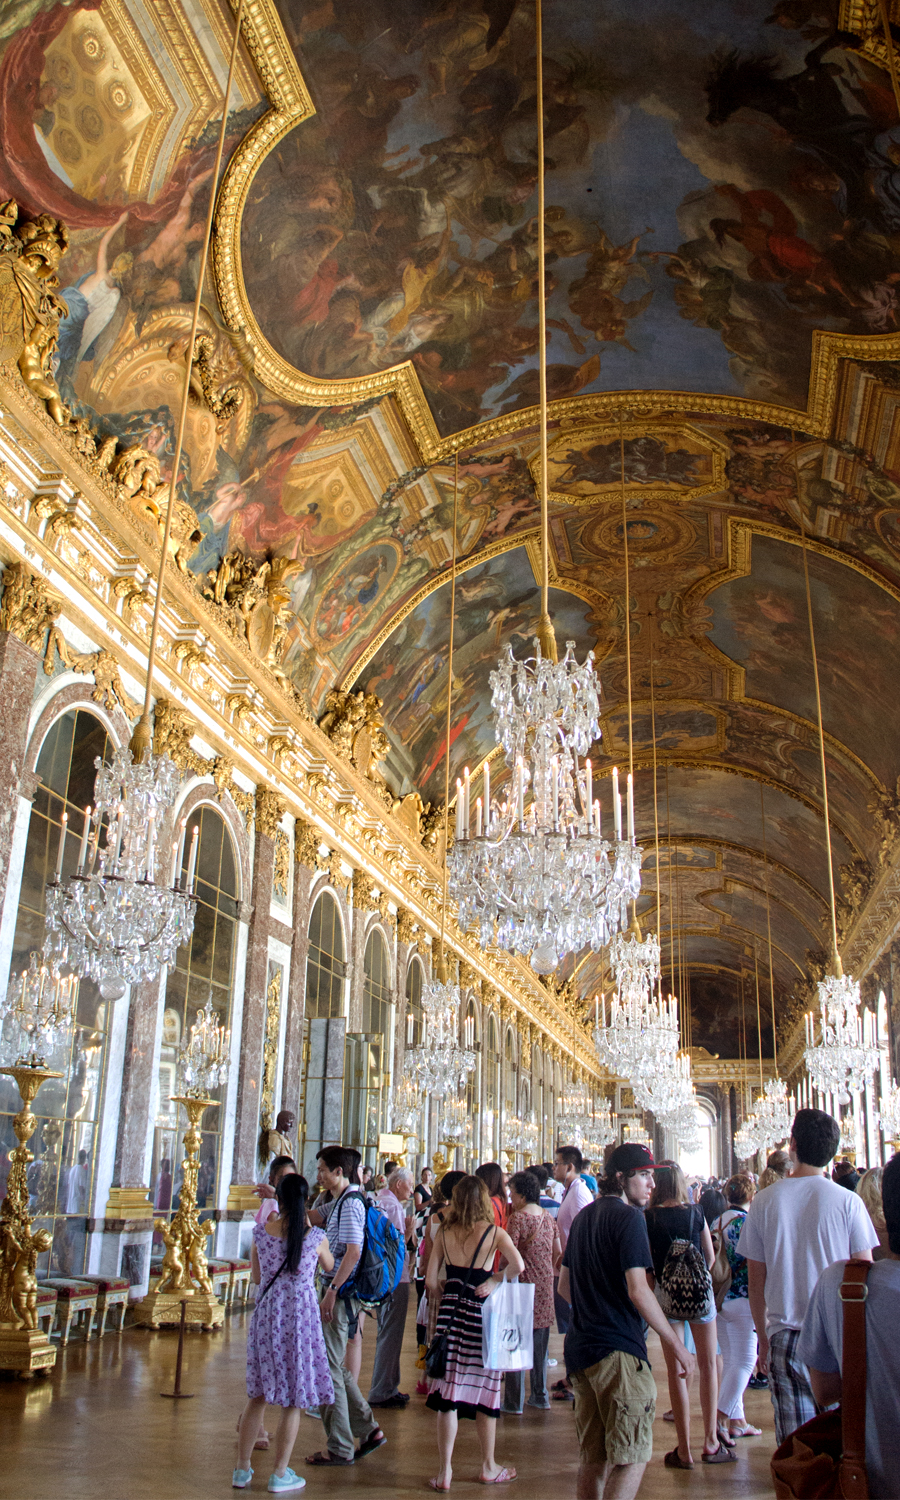 2014-chateau-de-versailles-paris-france-28-2